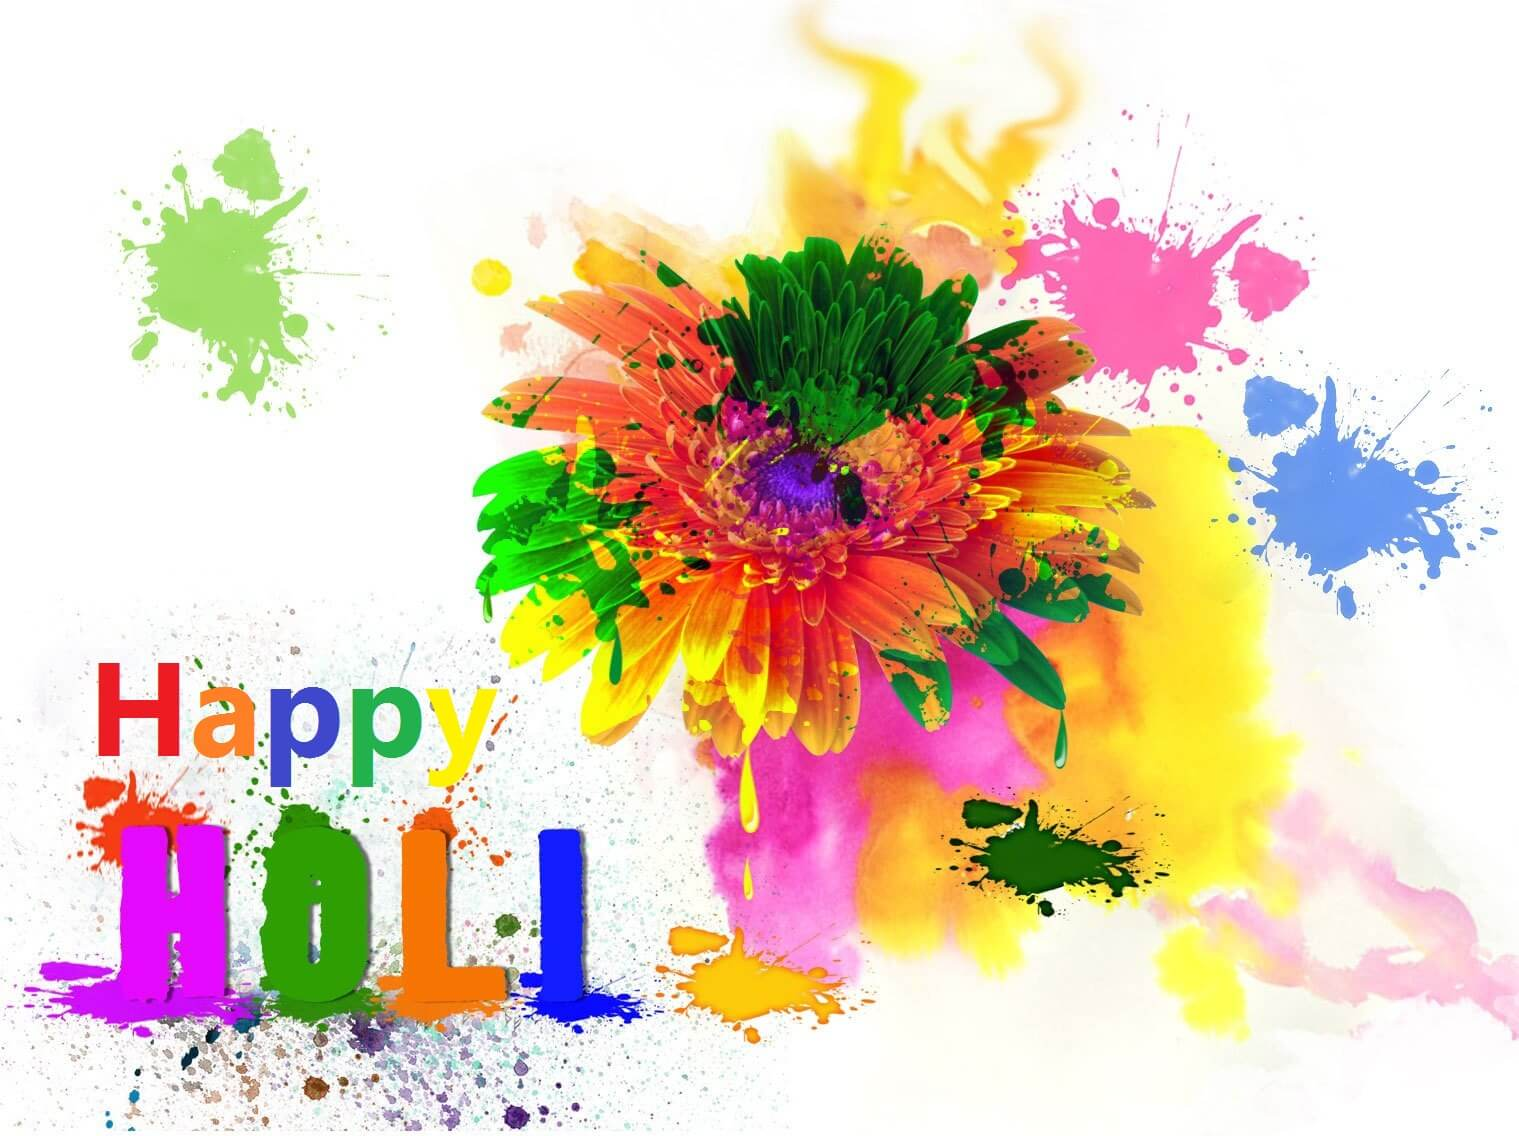 happy holi 2017 from happyfestivals.com